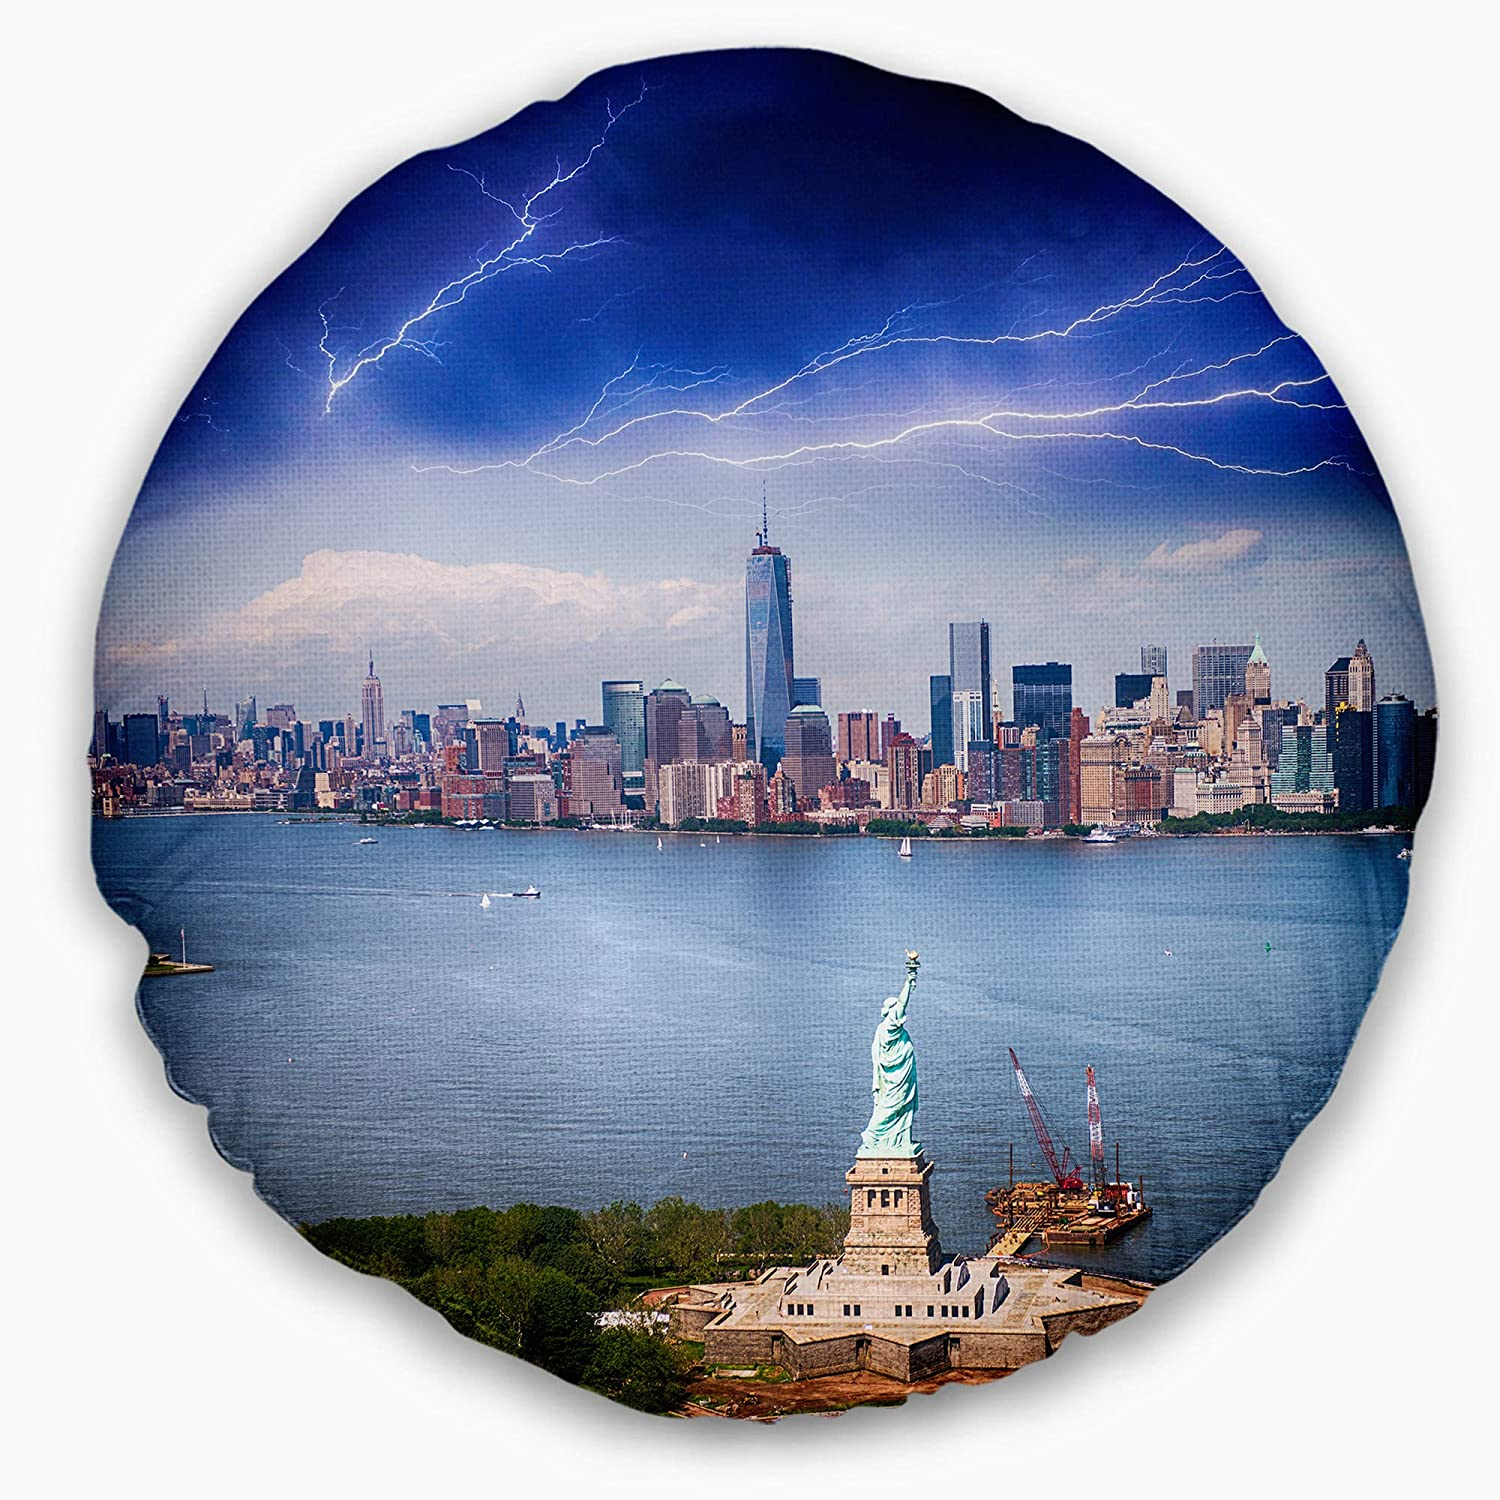 Sofa Throw Pillow 20 Designart CU7570-20-20-C Statue of Liberty and Skyline Cityscape Photo Round Cushion Cover for Living Room Insert Printed On Both Side